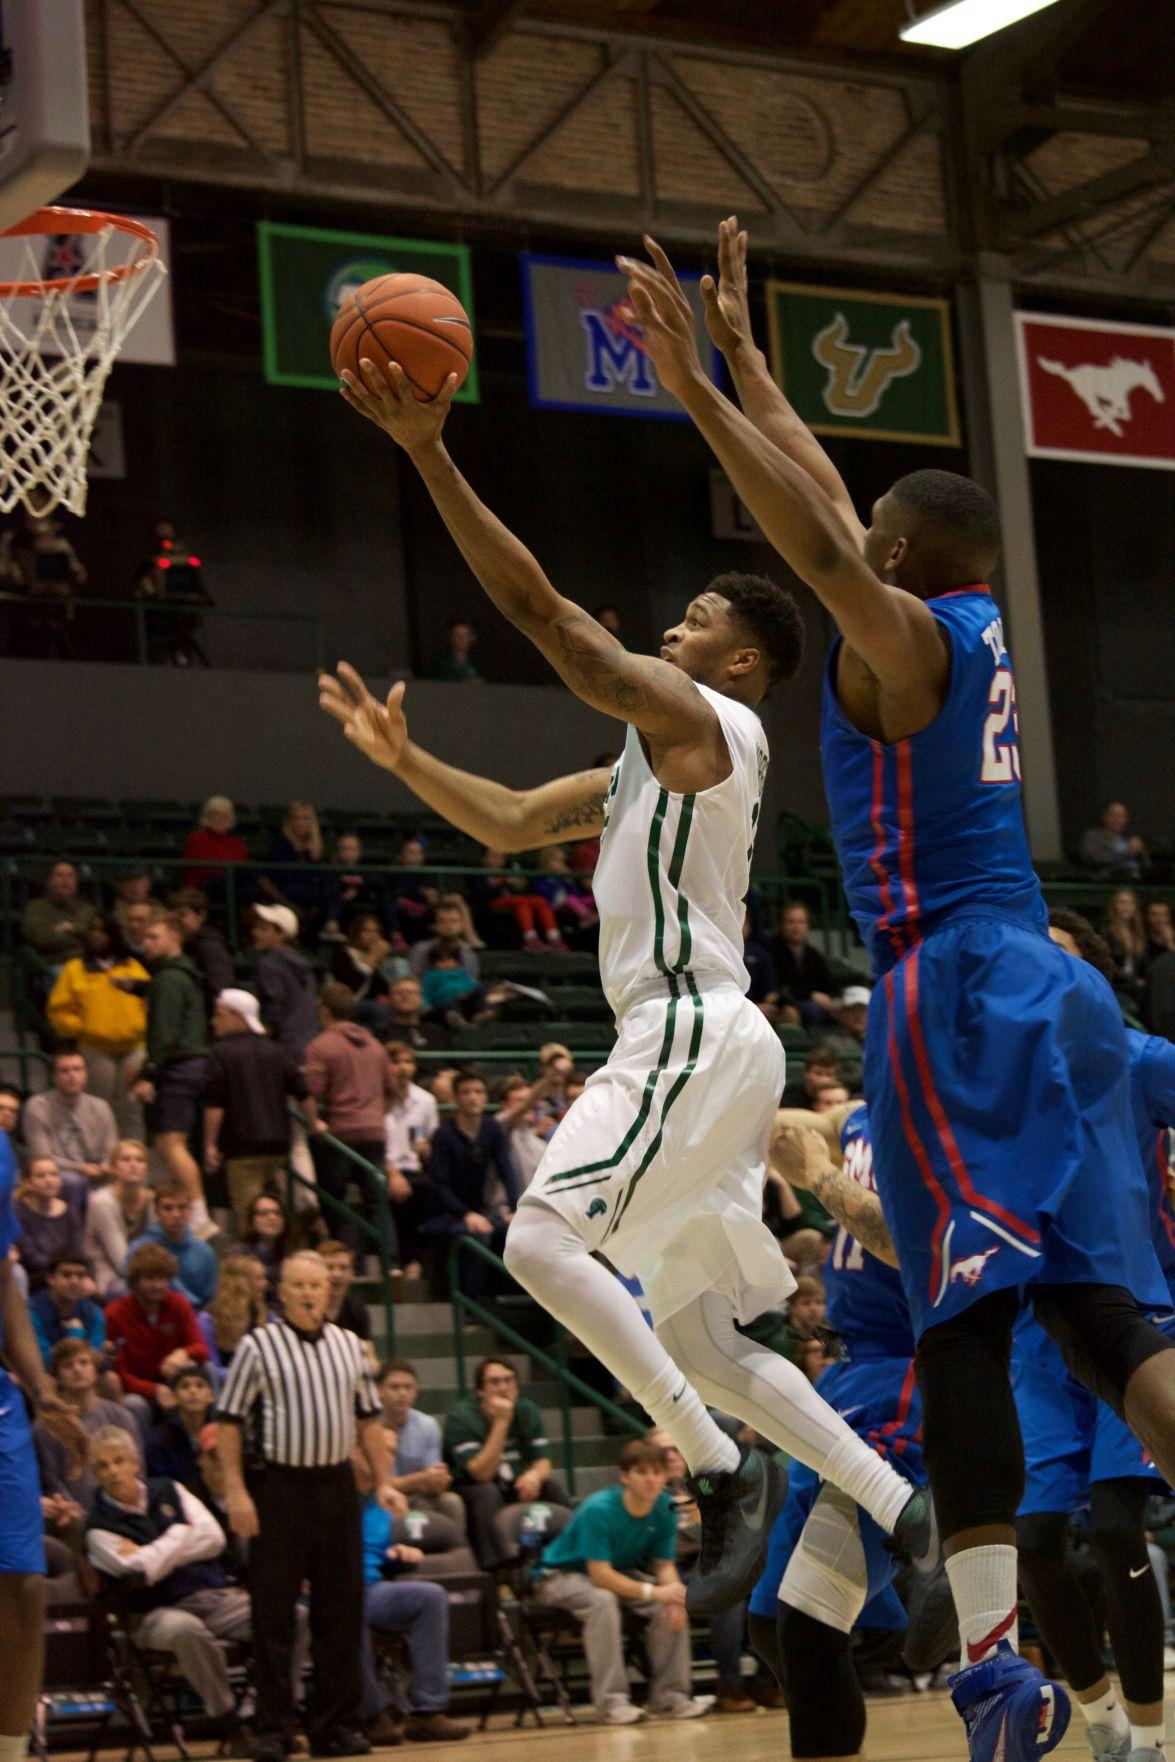 Redshirt junior guard Malik Morgan goes up for a lay up against a Southern Methodist University Mustang in a 60-45 loss this past season.